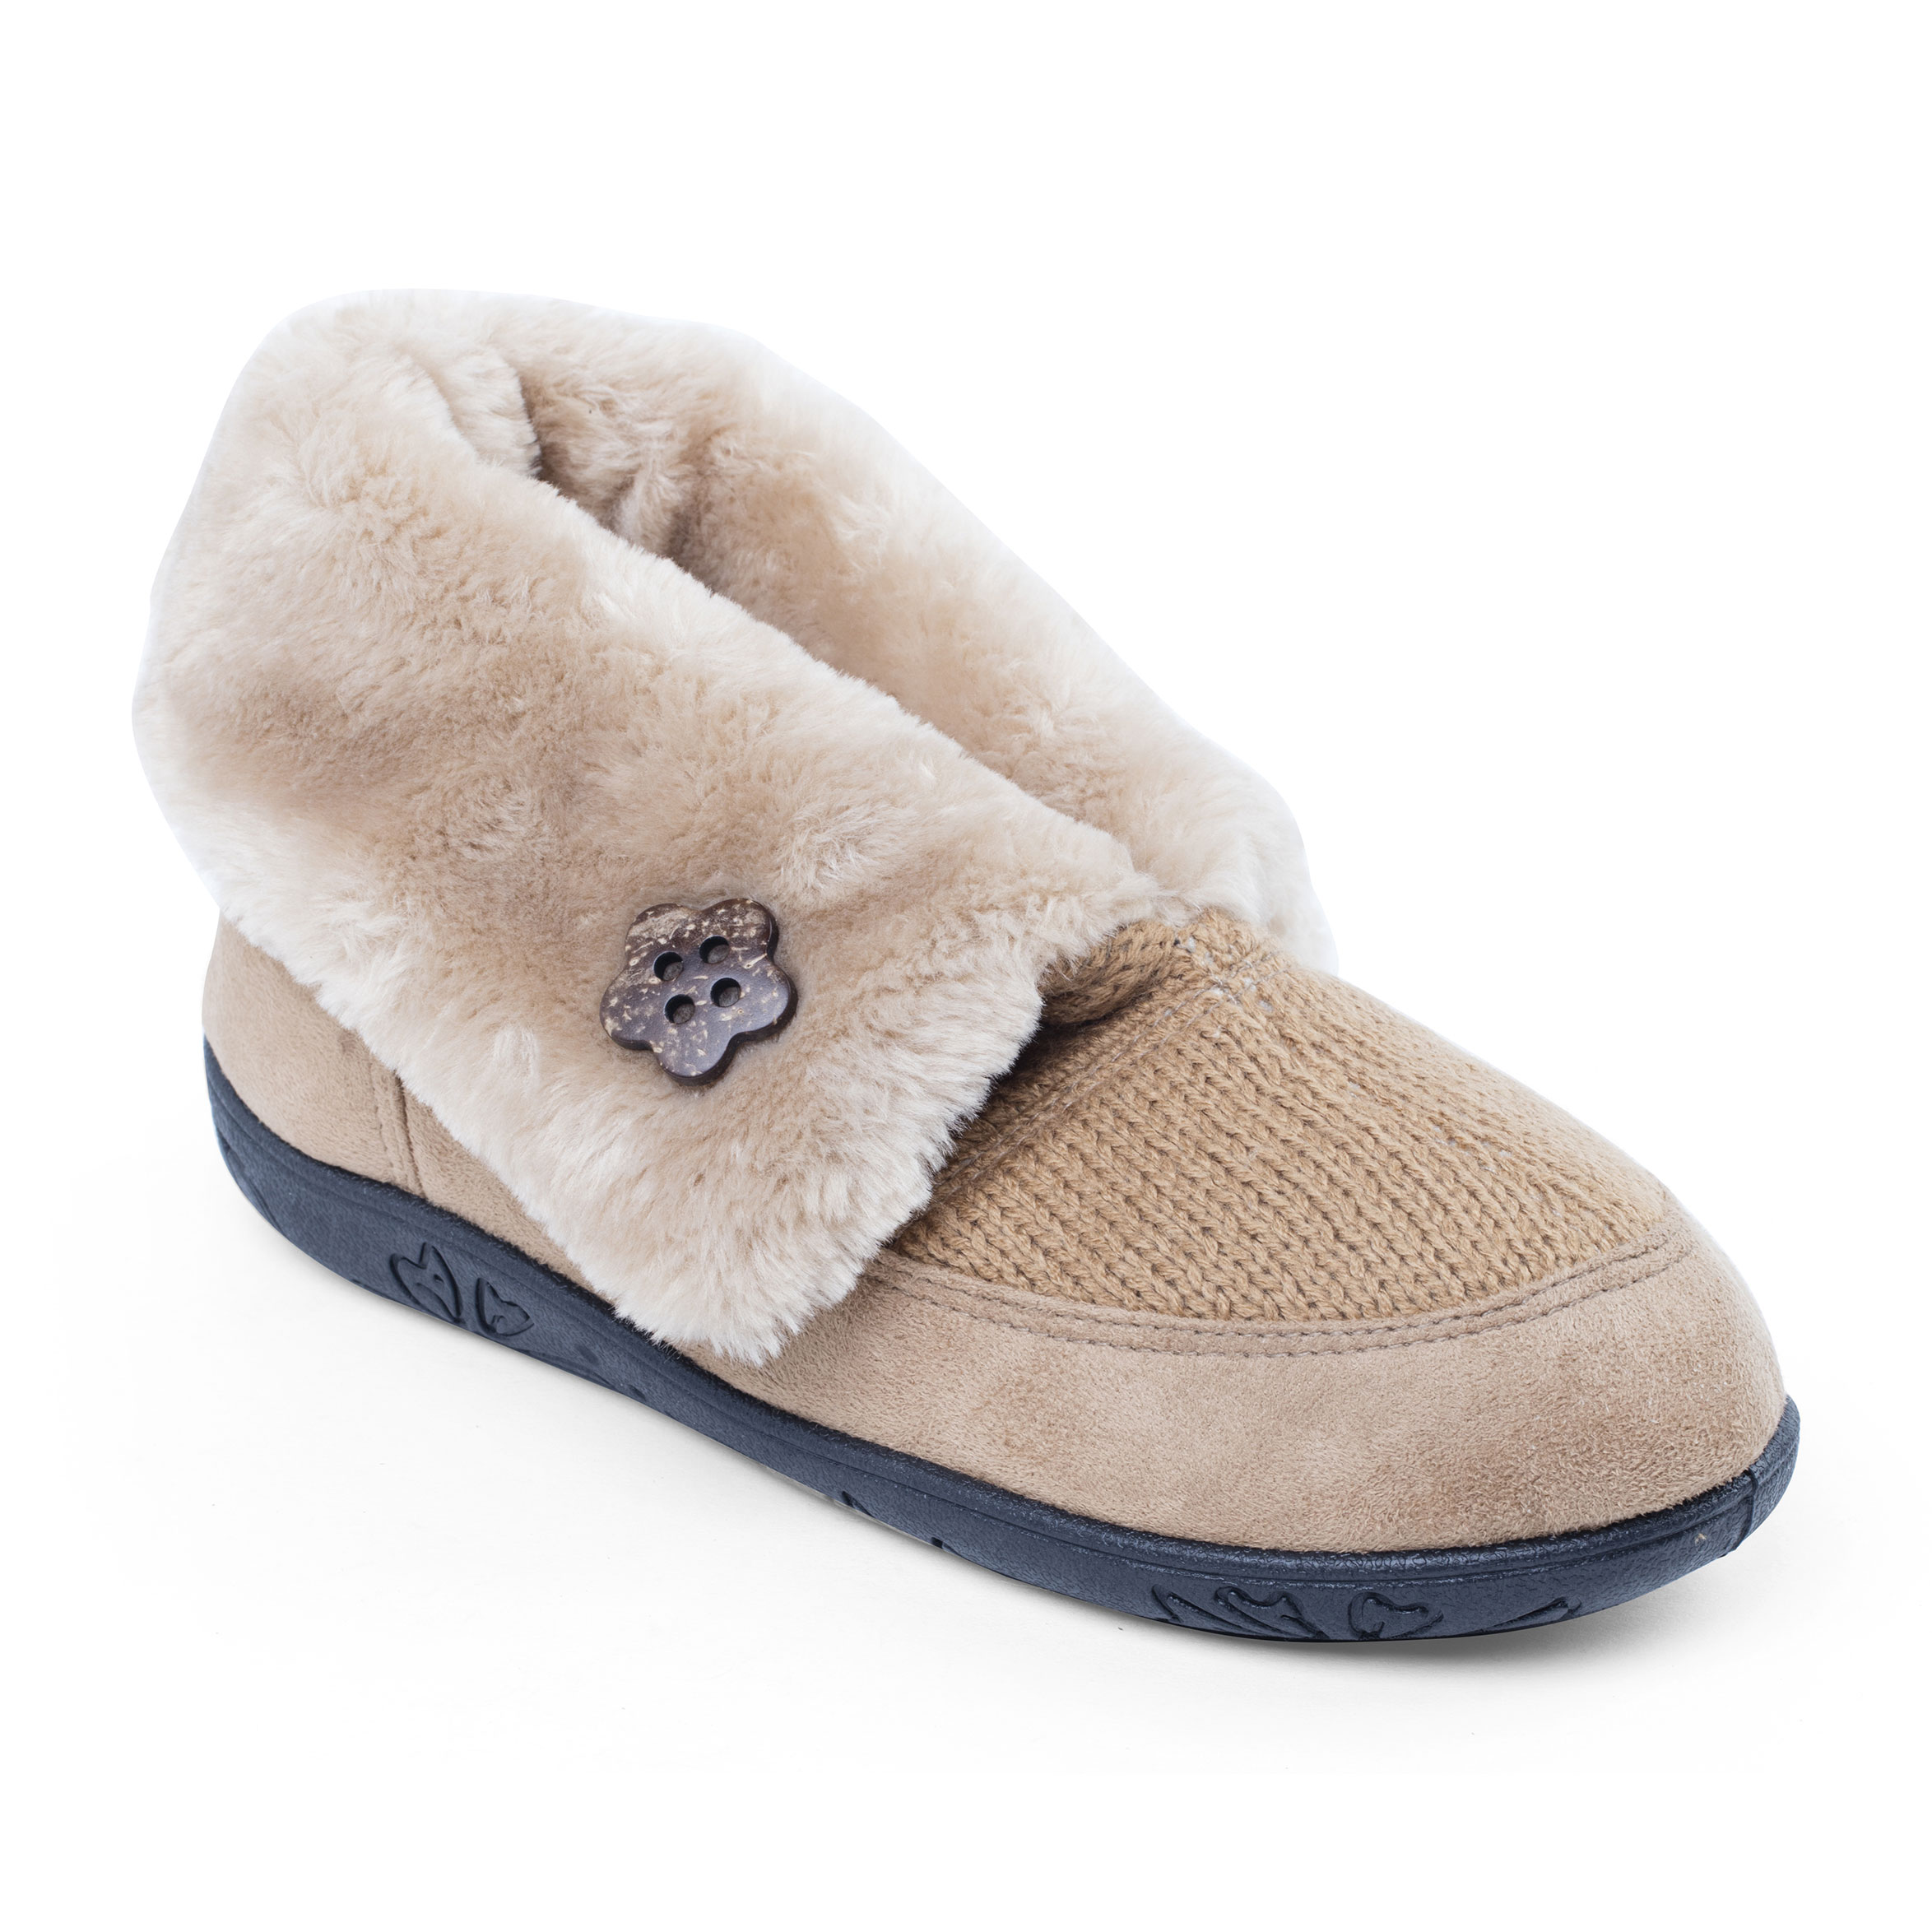 27030a51348 ... Padders Eden Ladies Slipper. Chat Need some help  Chat with us now. eden  camel